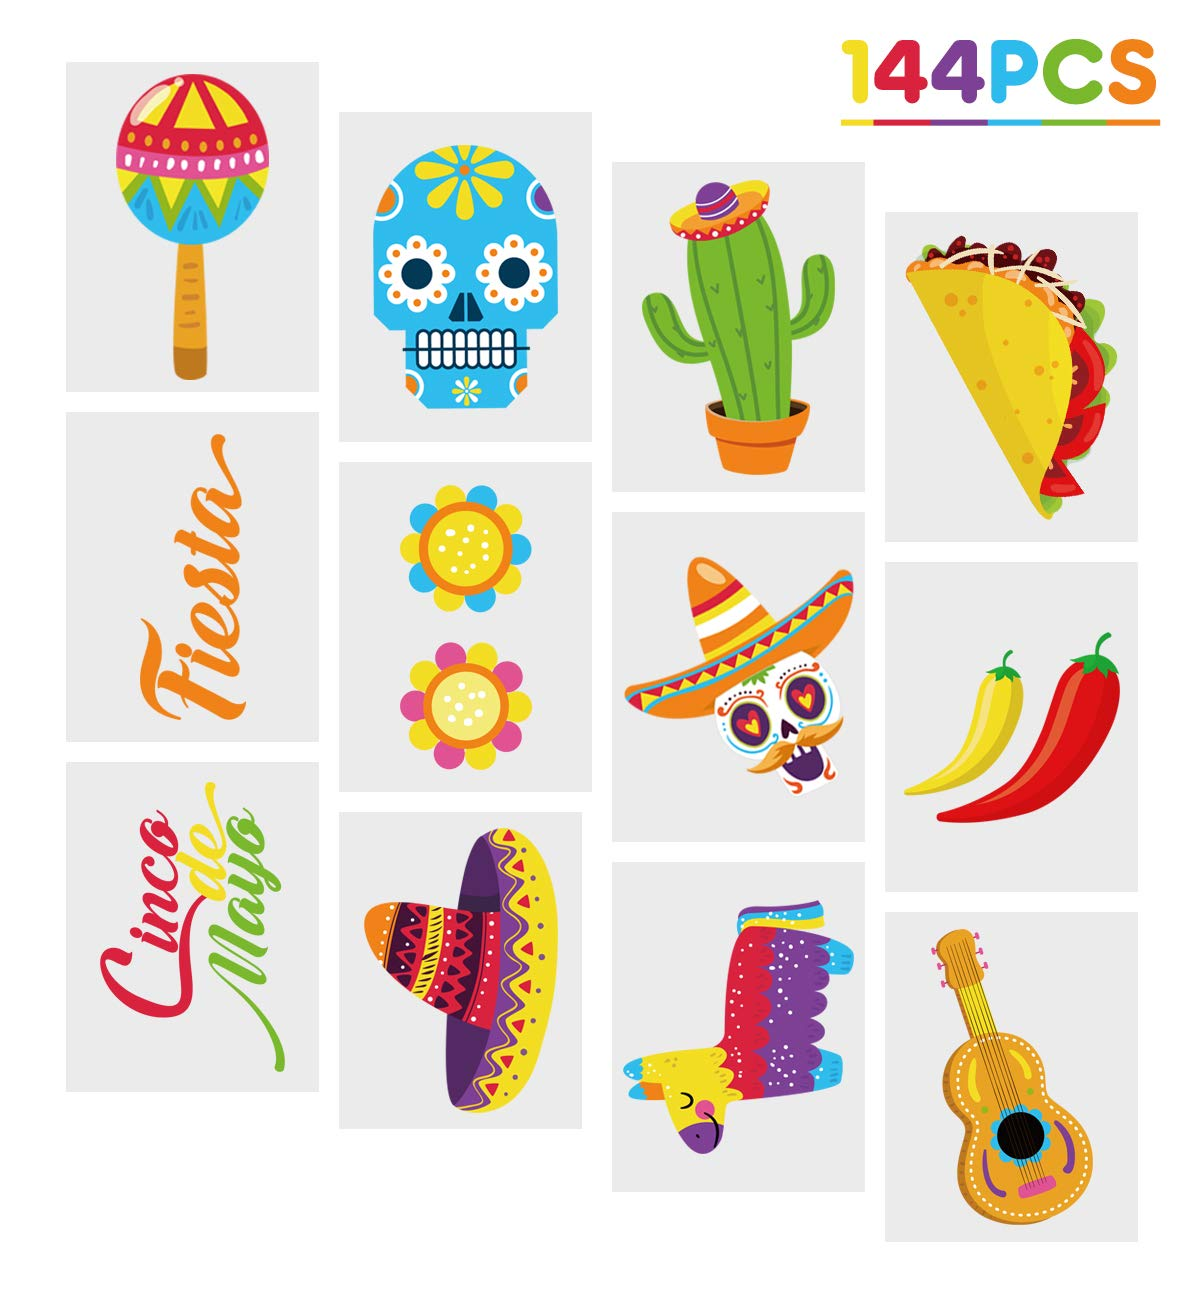 Cinco de Mayo Fiesta Tattoos Stickers – Mexican Party Favors Supplies Decorations